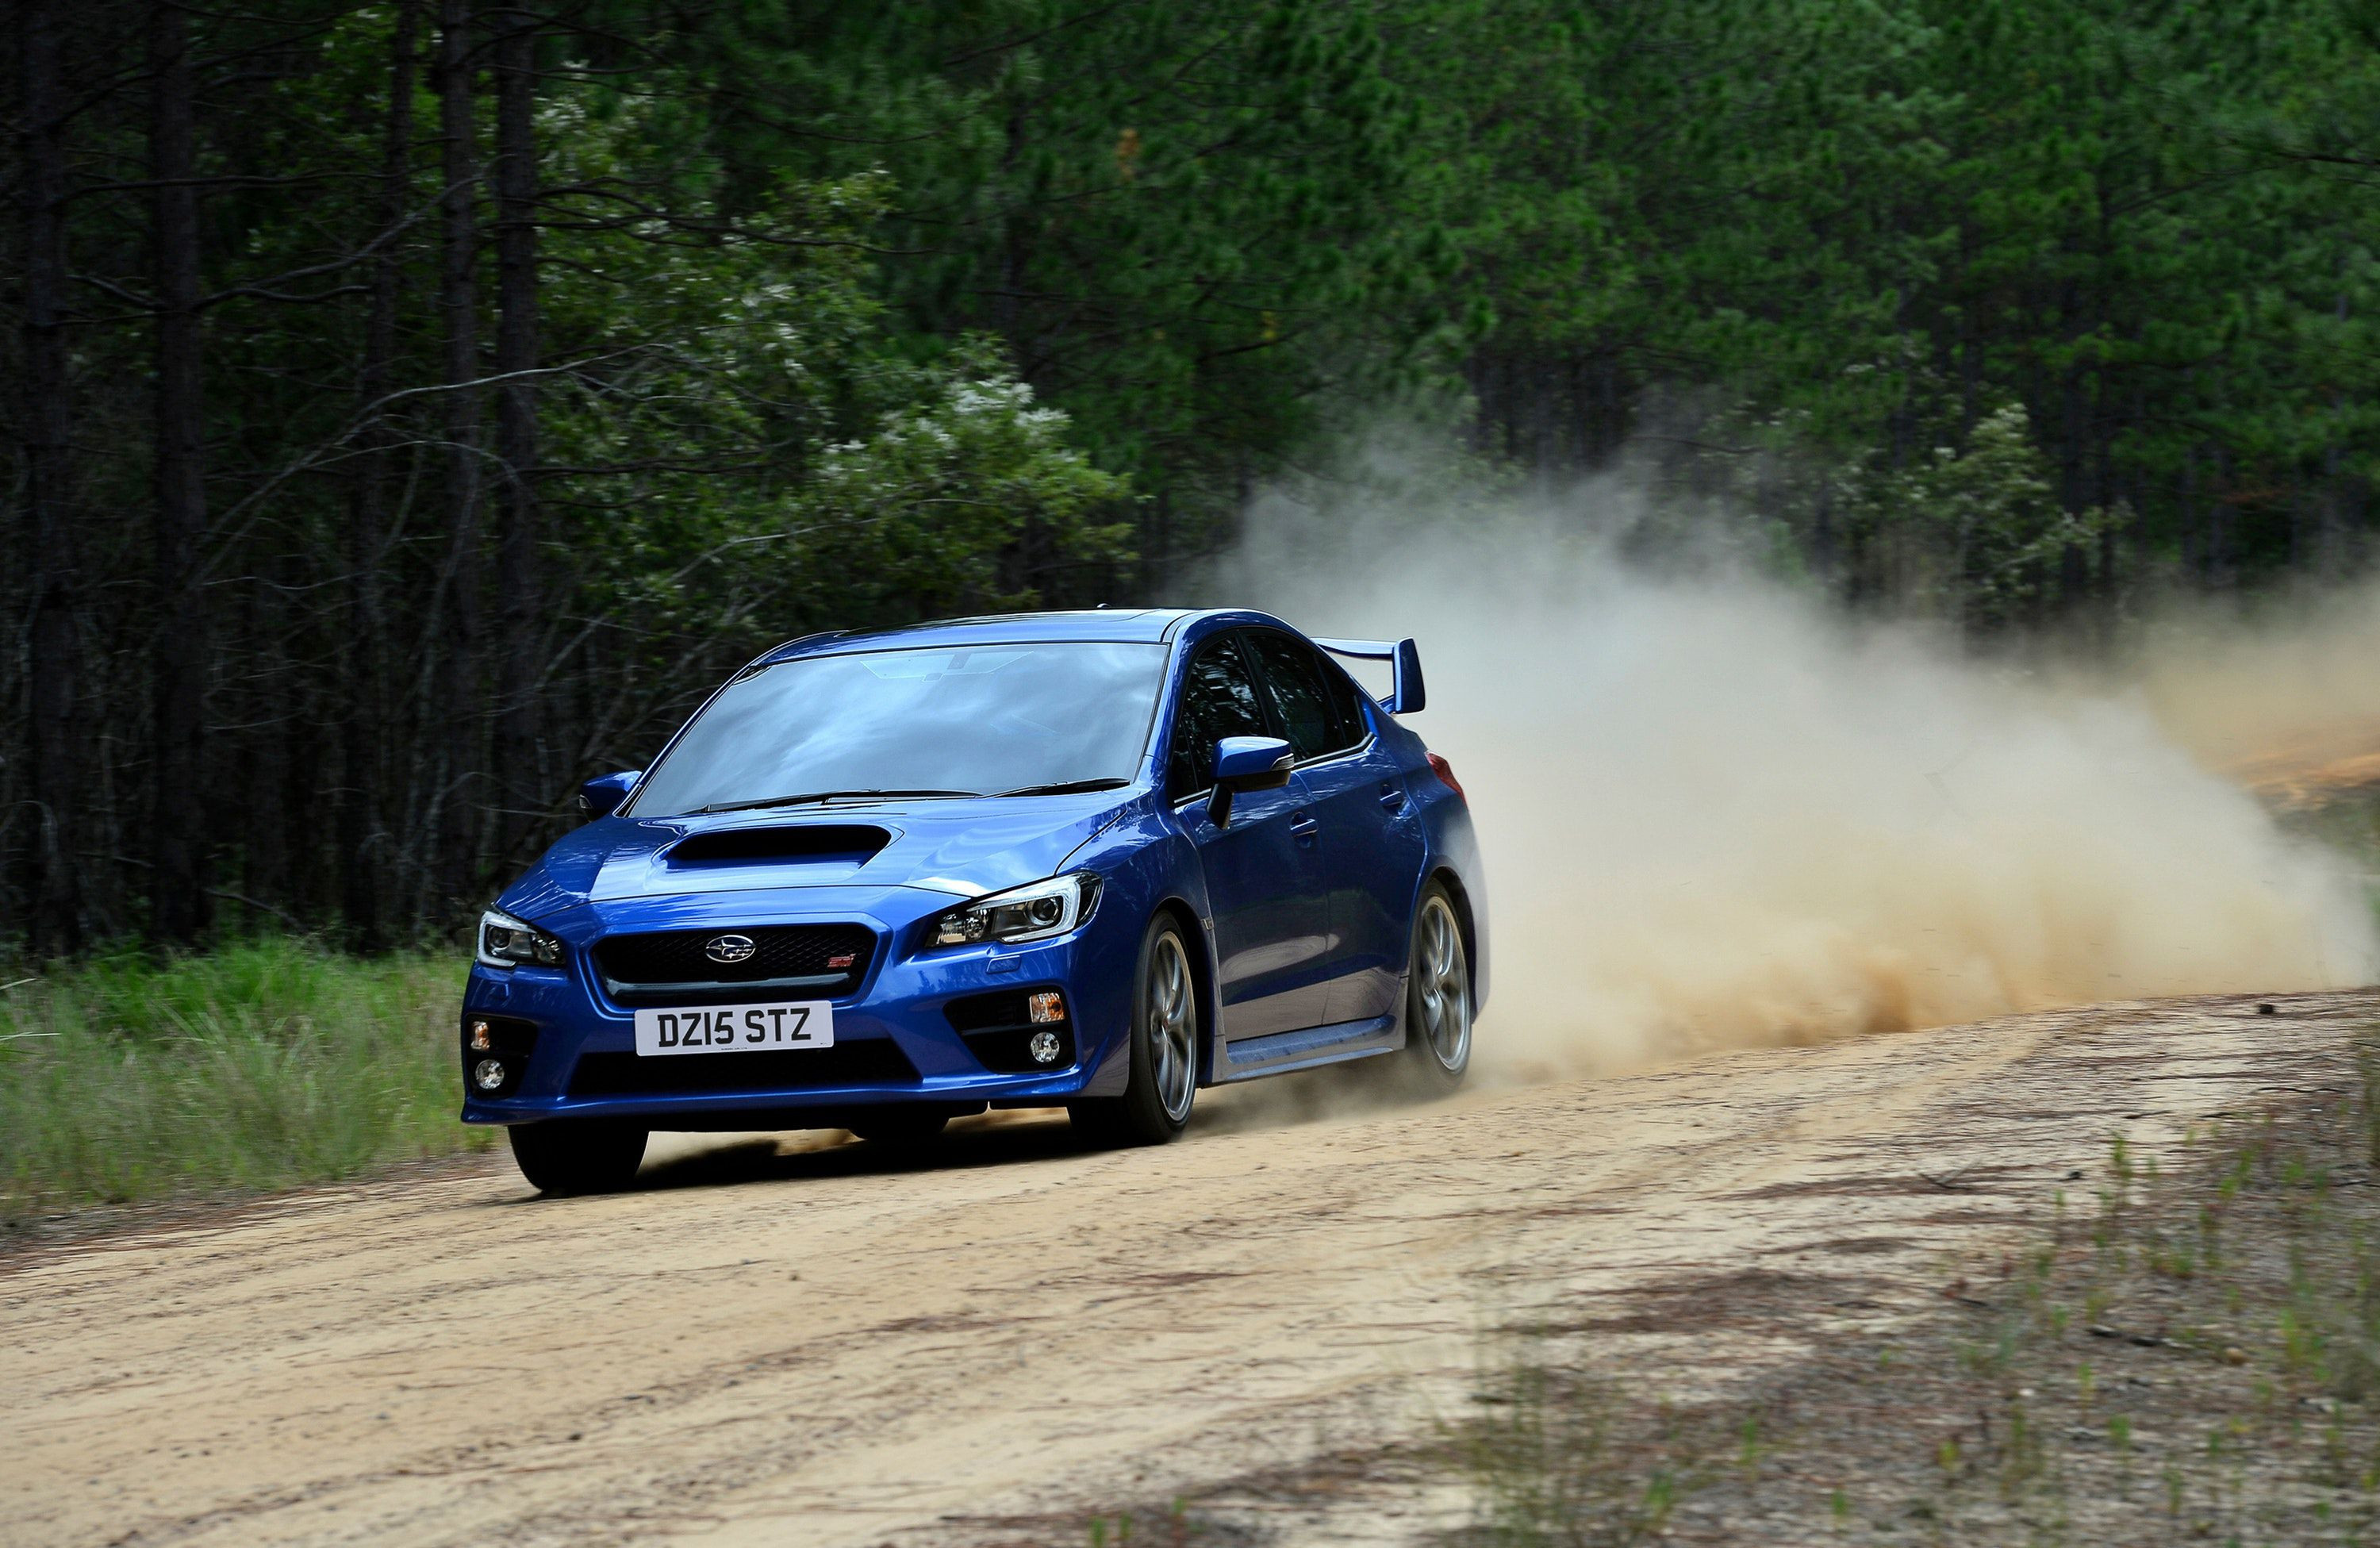 Subaru driving on a dirt track through a wooded area